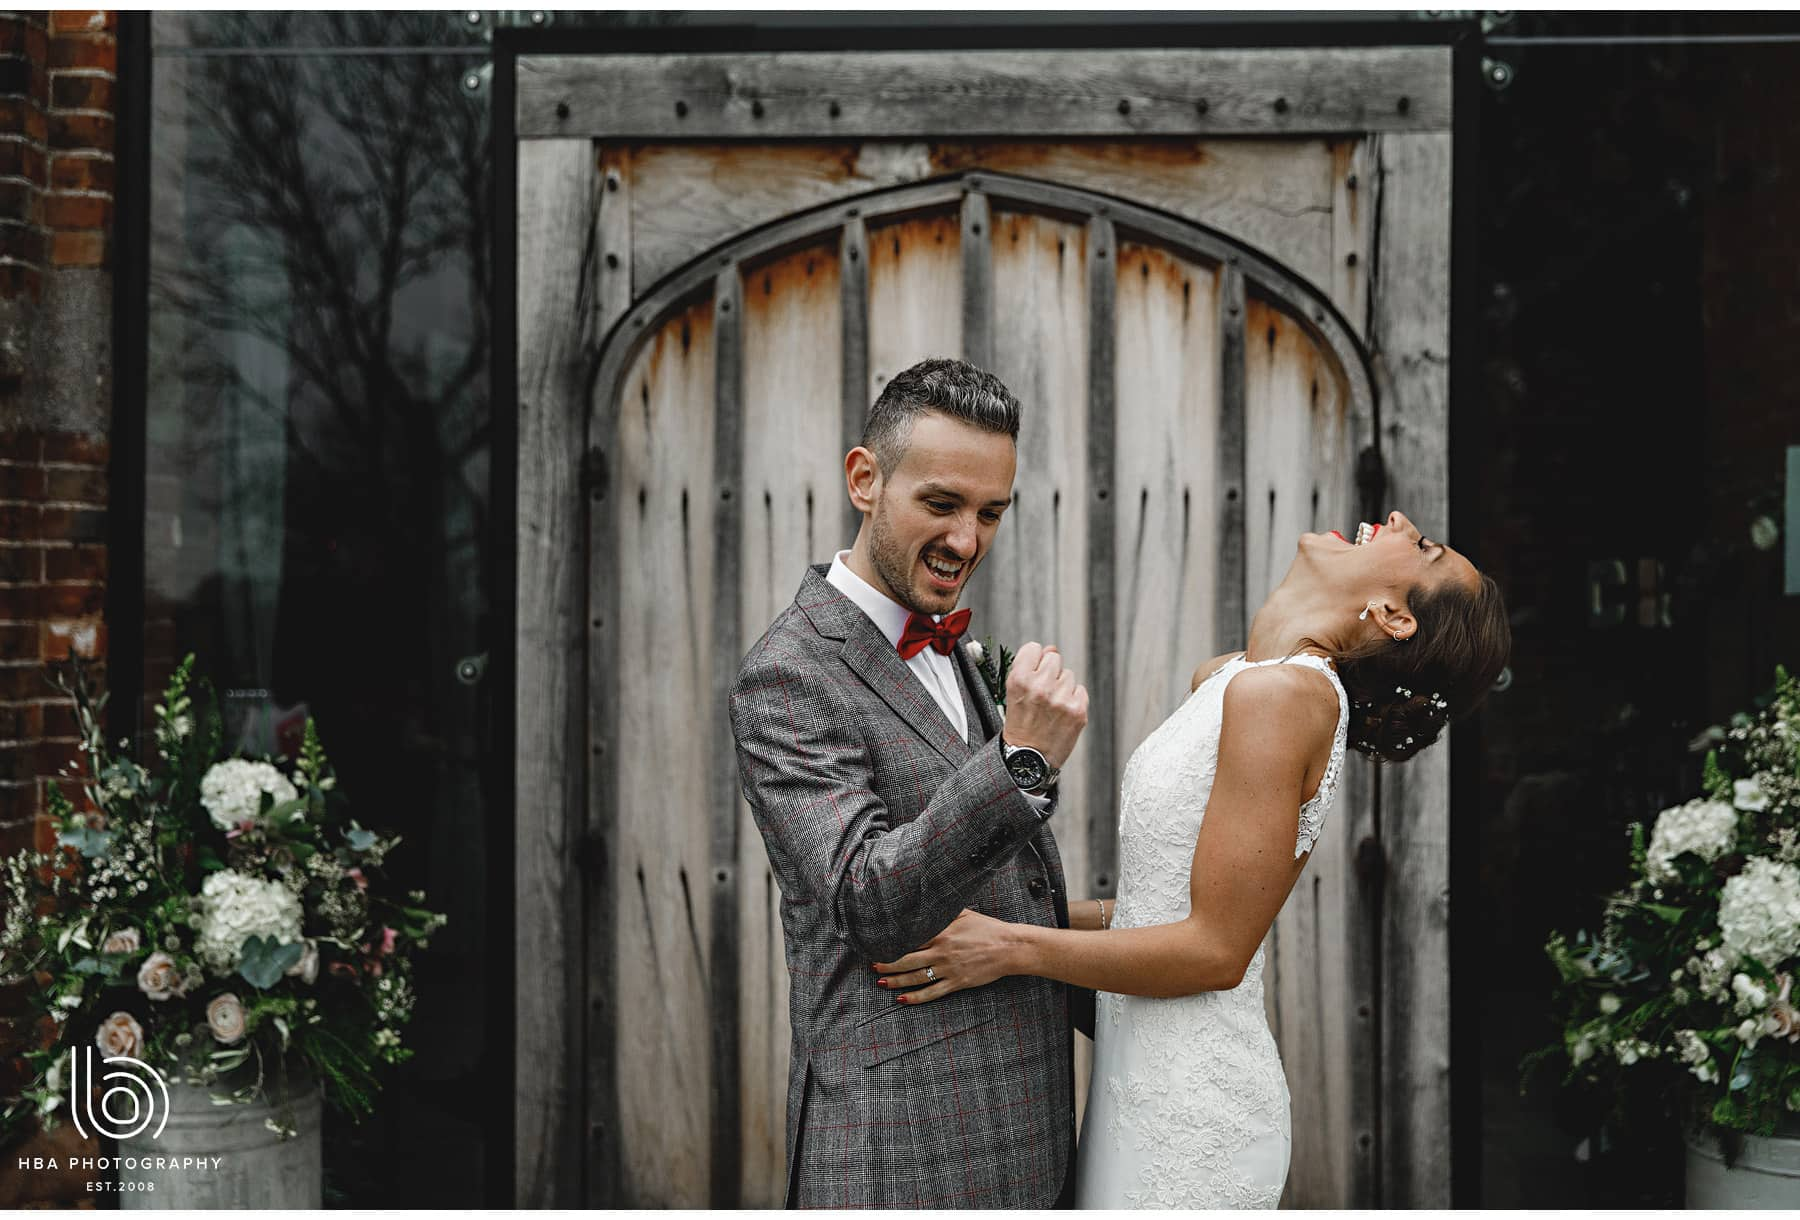 the groom cheers and his wife laughs